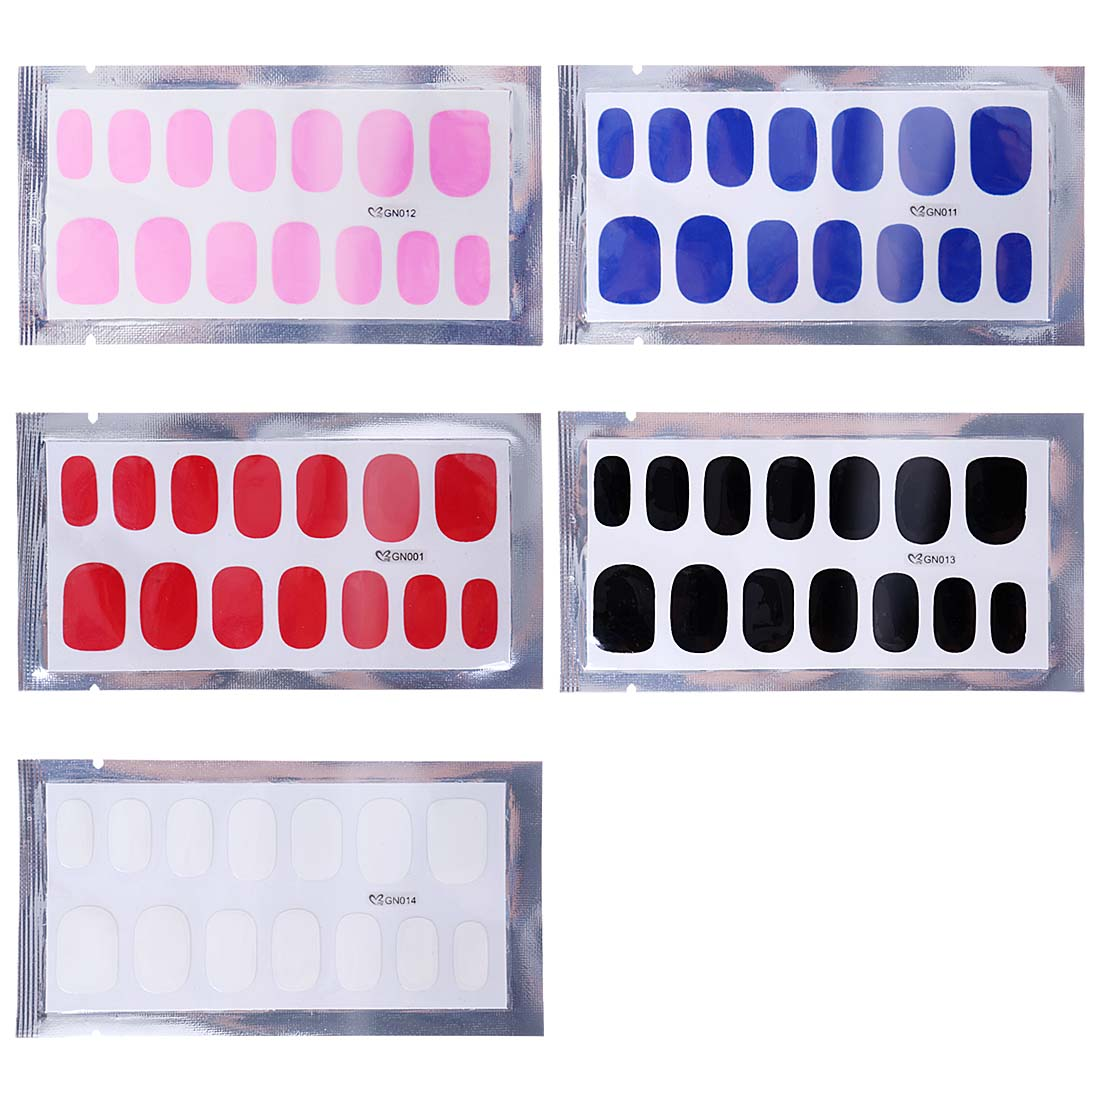 BMC Shiny Glossy Gel Polish Nail Art Applique Sticker Wraps - 5 Sheet Set - NO UV LAMPS REQUIRED